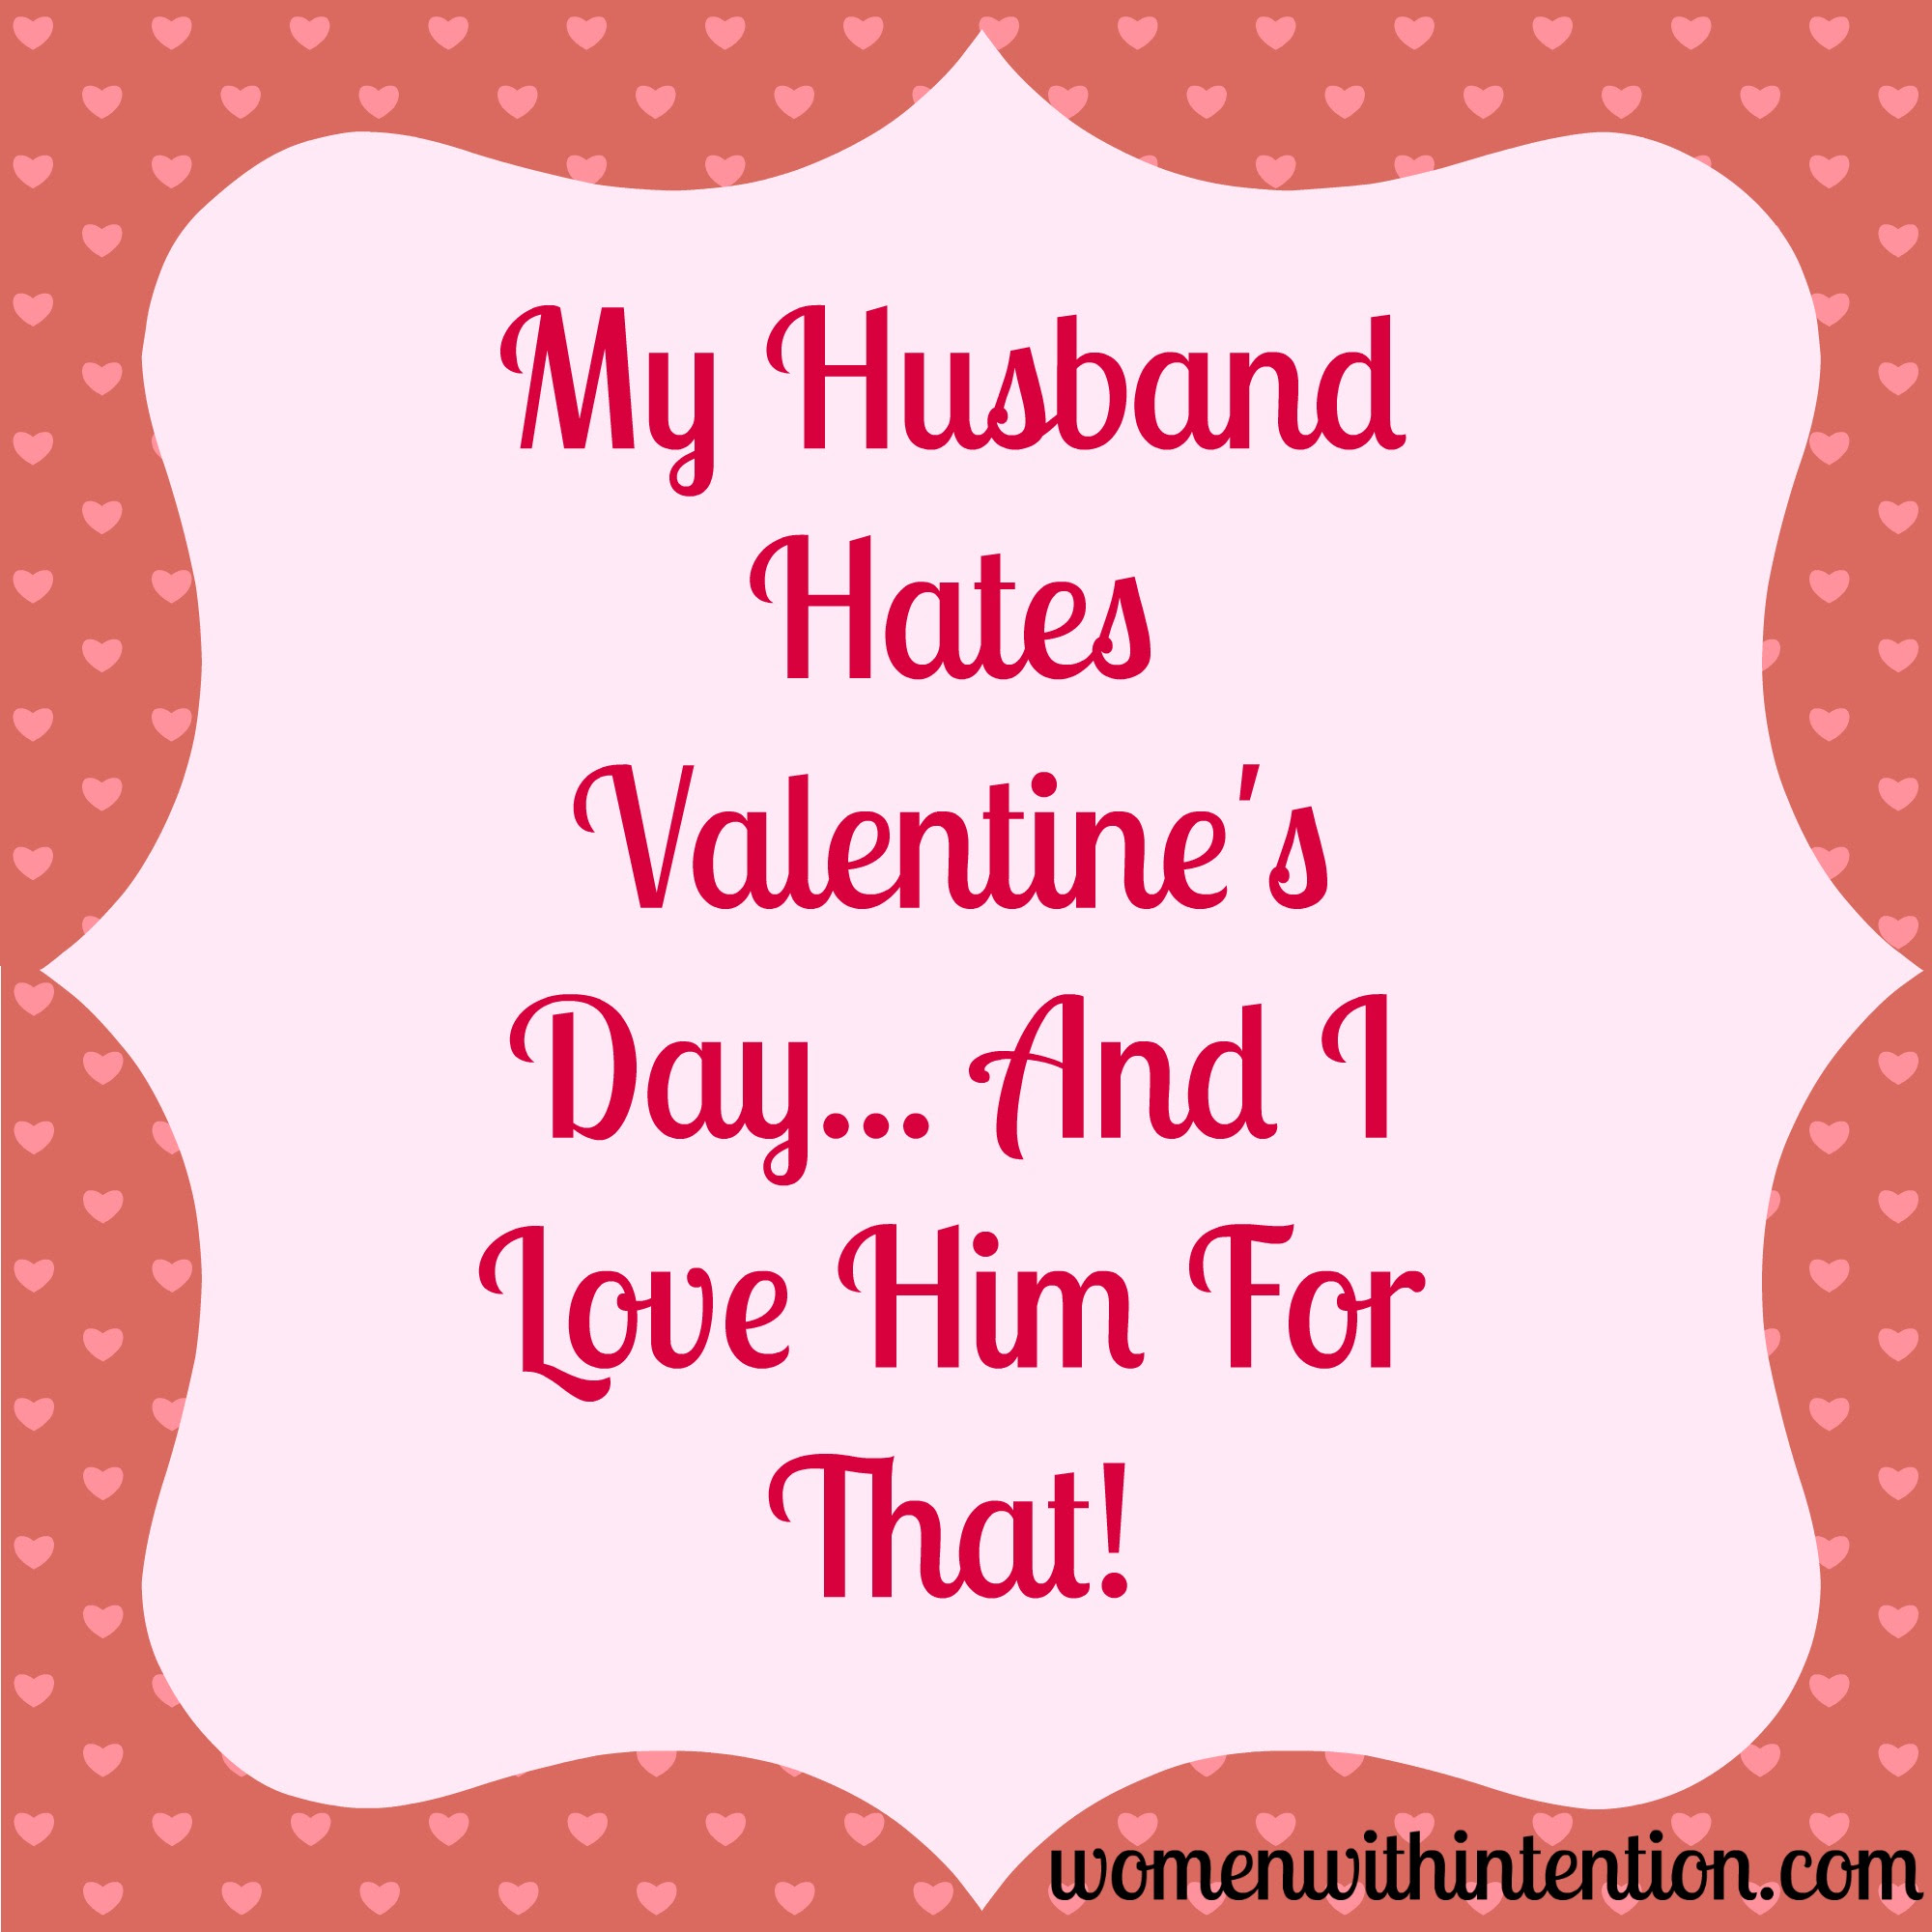 My Husband Hates Valentine s Day And I Love Him For That A new series